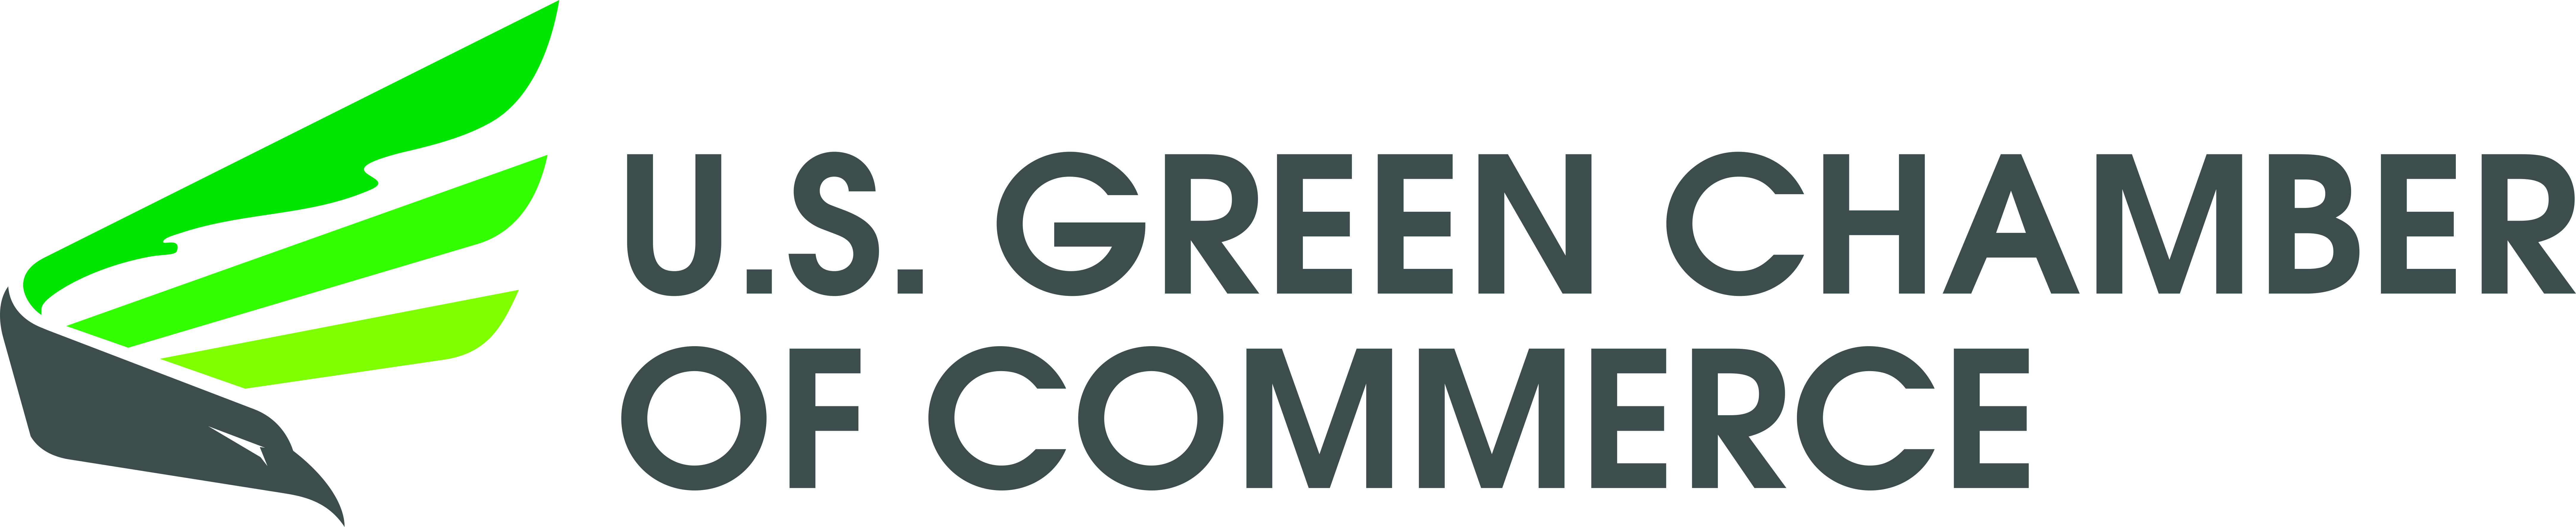 US Green Chamber of Commerce logo horizontal JPG-CMYK eagle only.jpg